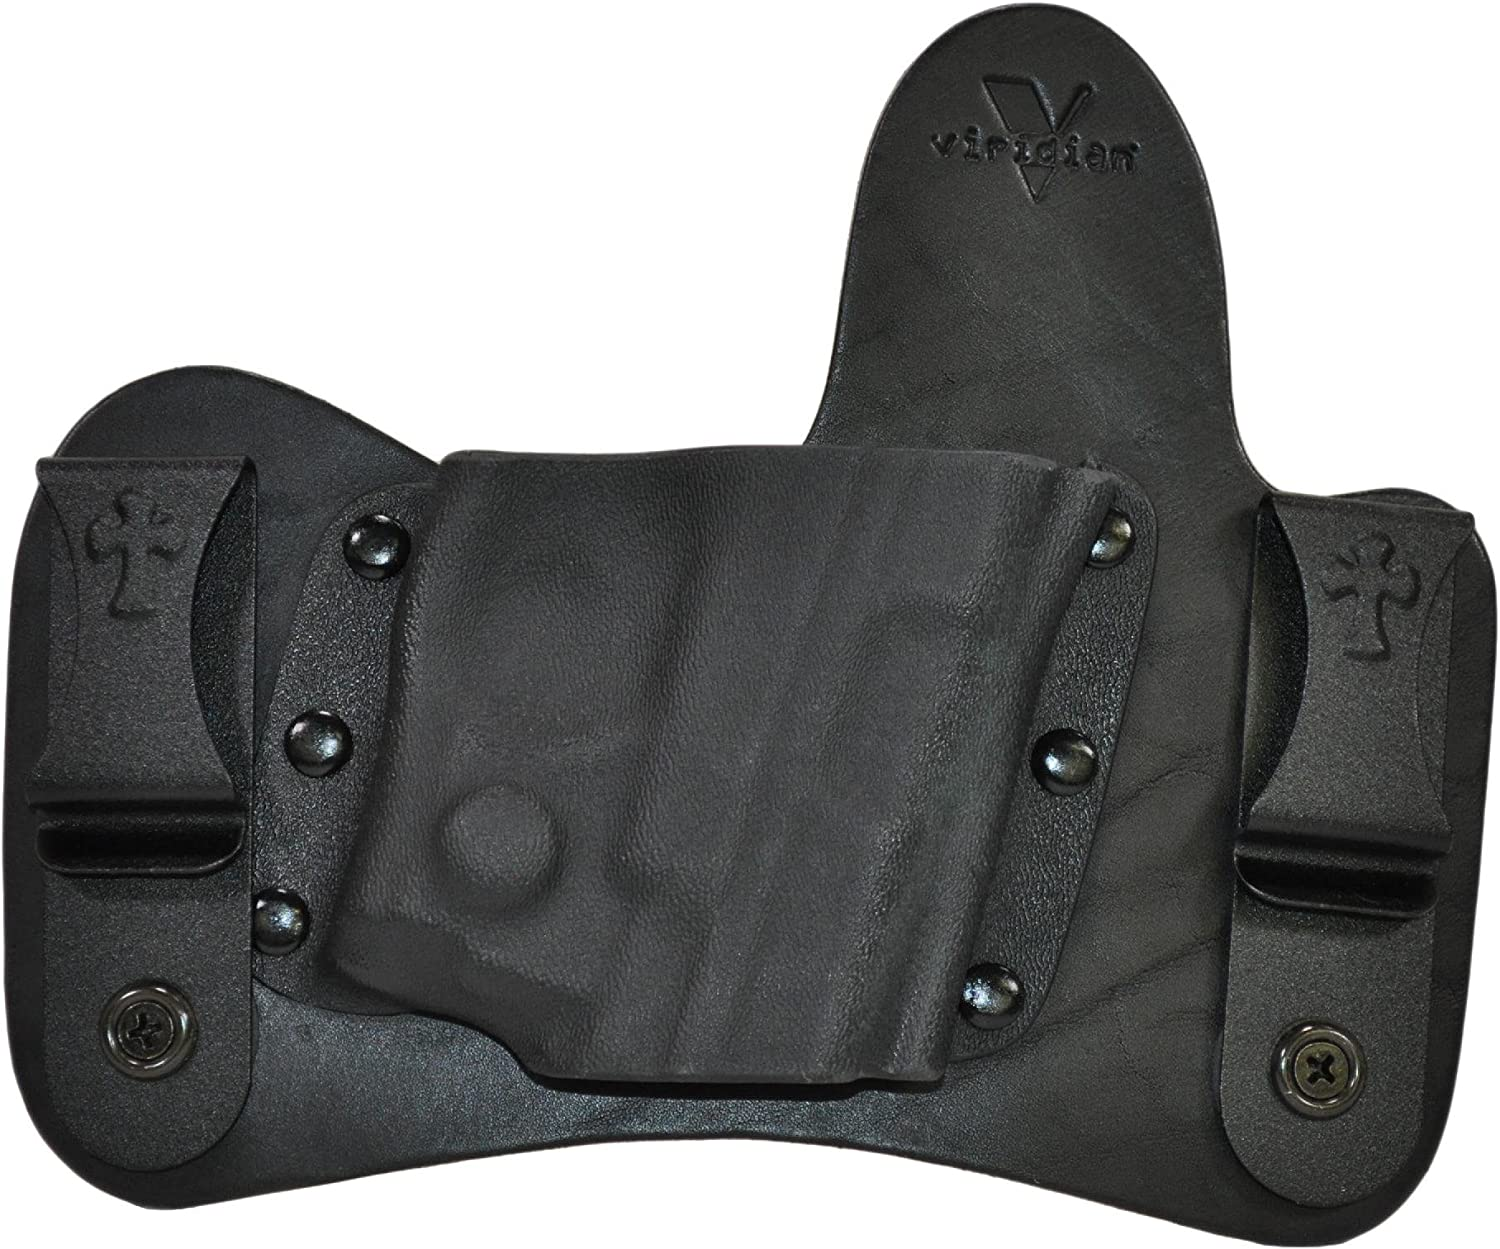 Best concealed carry holster for s&w shield